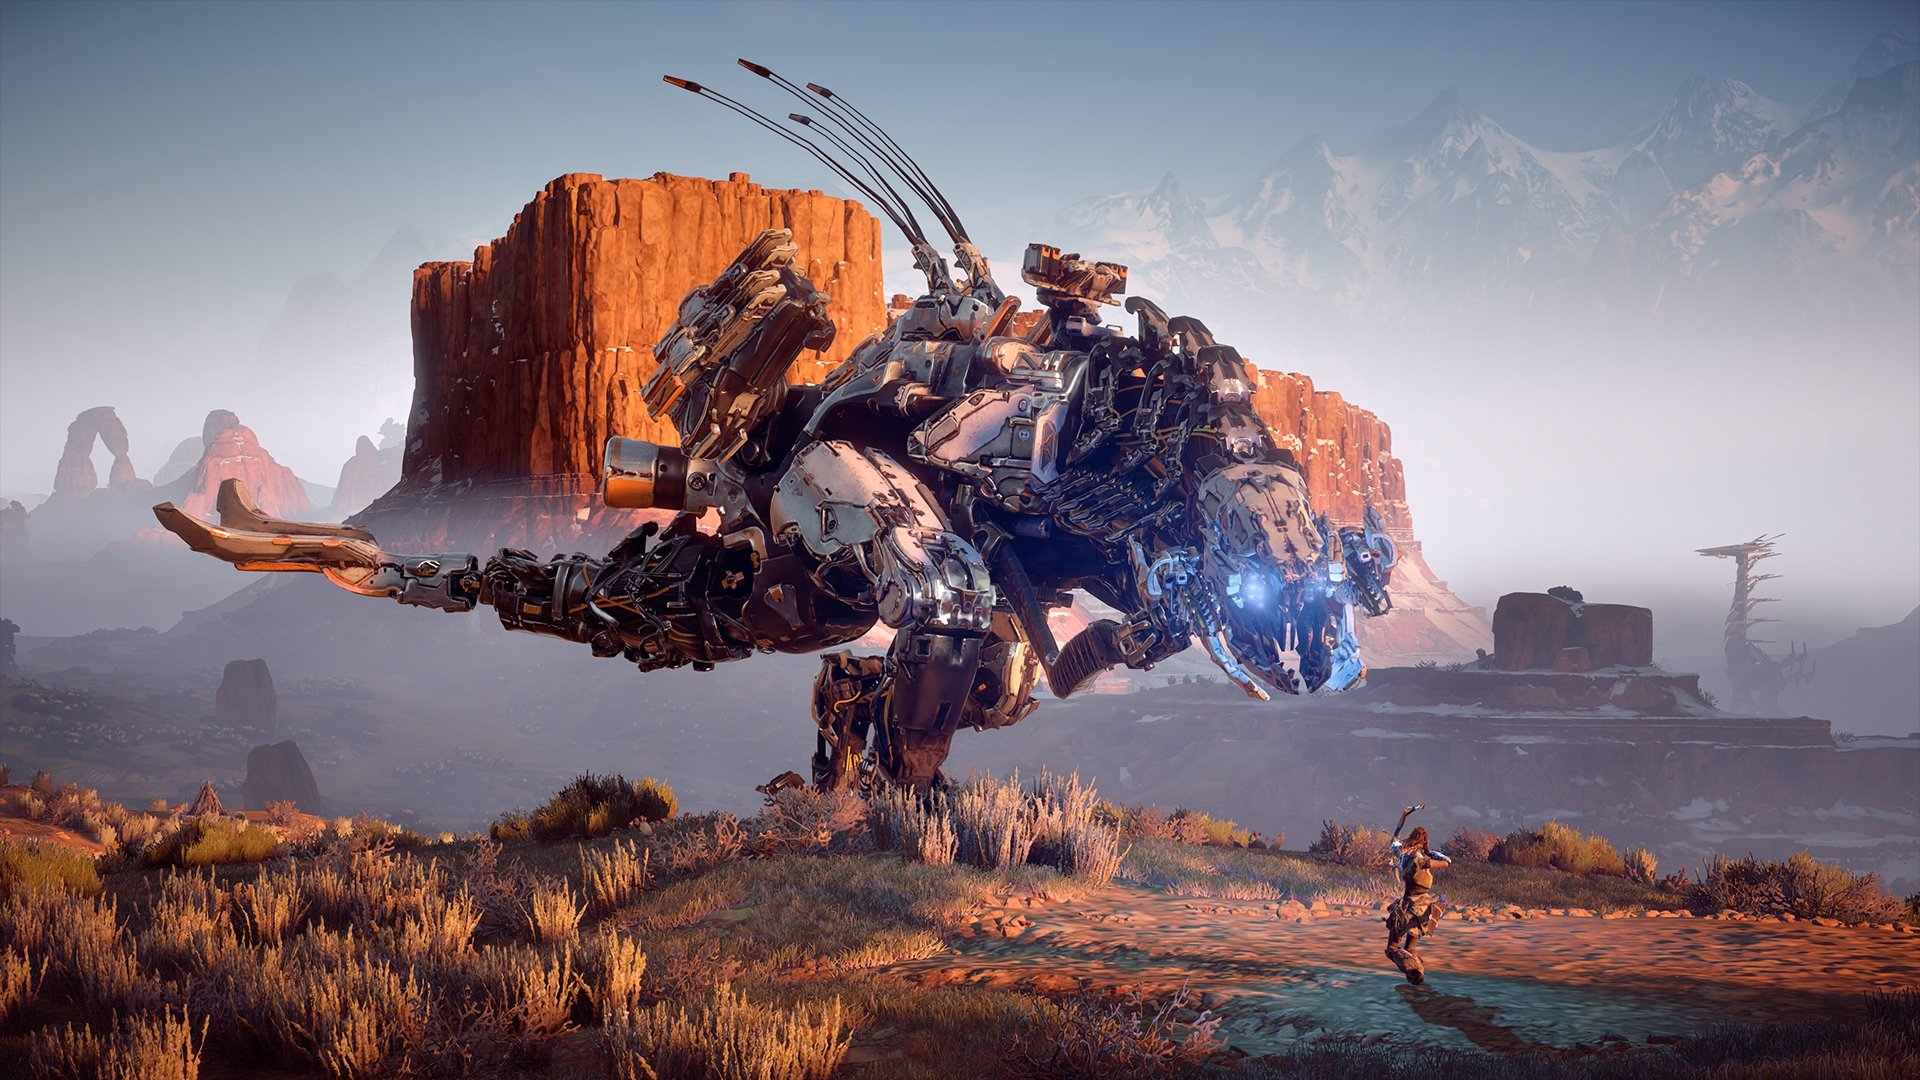 Ps4 Exclusive Horizon Zero Dawn Gets New Character And